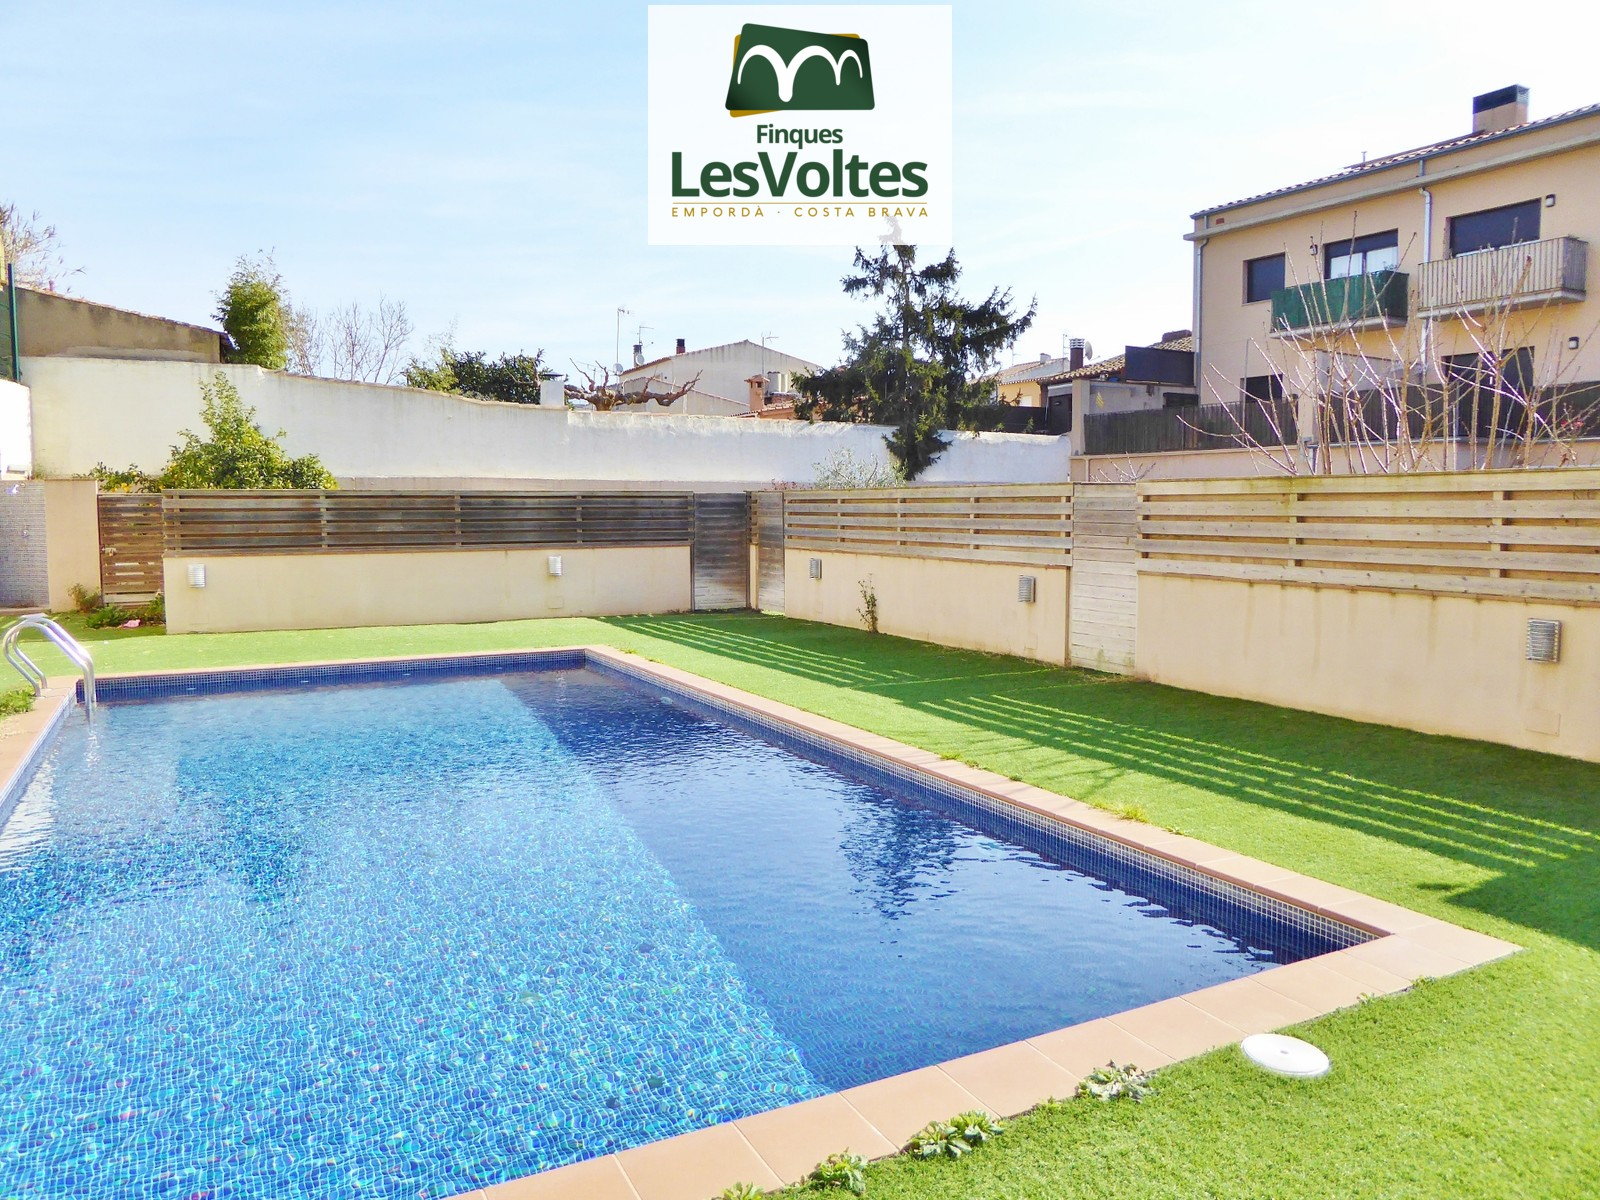 2-bedroom apartment with parking space and pool for sale in Palafrugell. First floor with elevator.